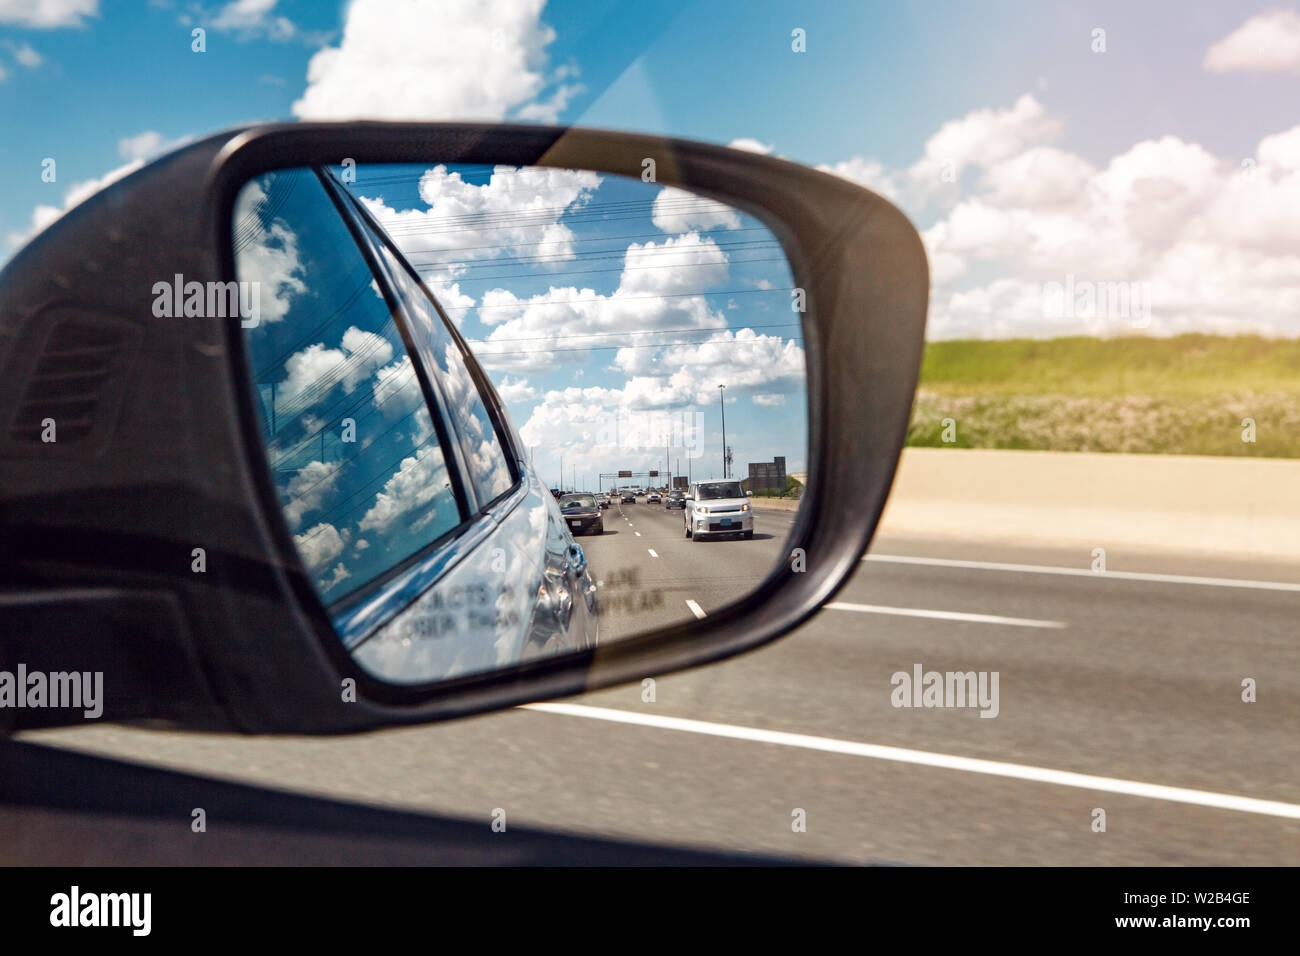 Closeup of rear back car mirror with beautiful landscape midday view of  Toronto city highway street road. Cars traffic during sunny day with white cl - Stock Image